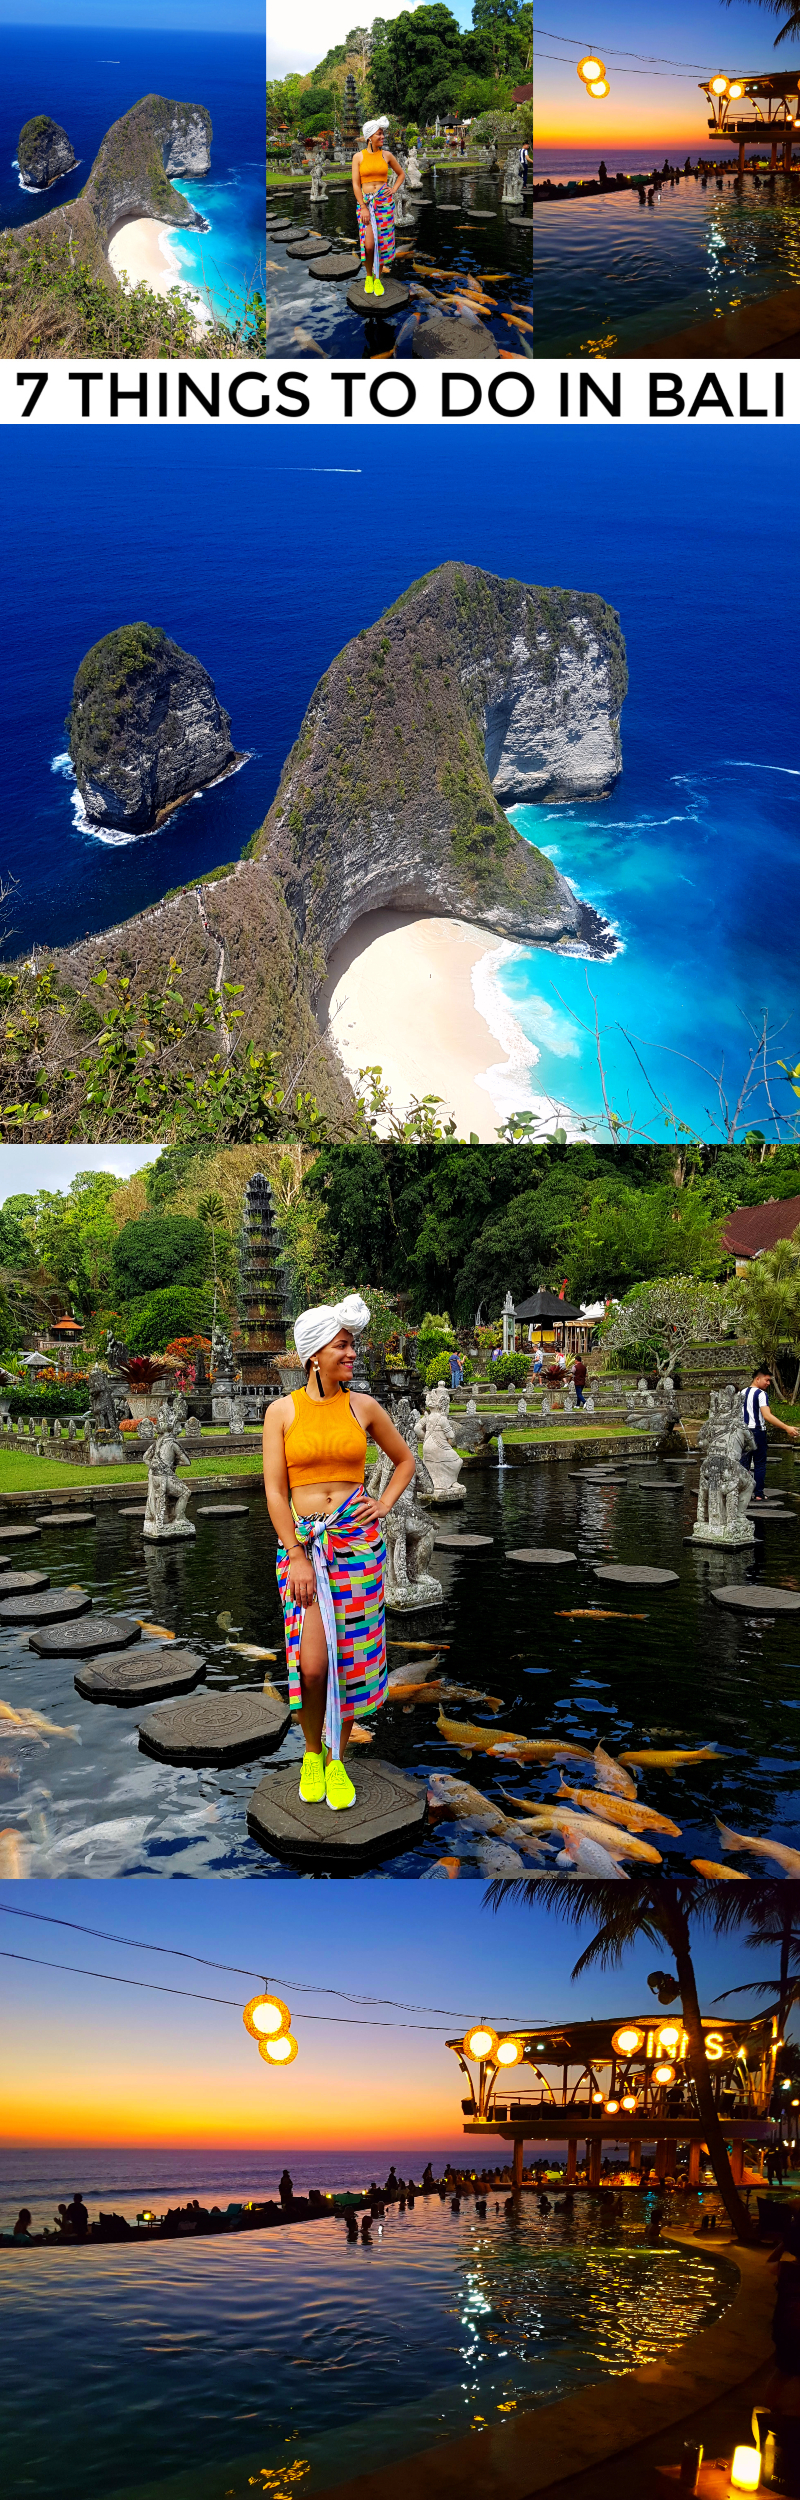 Top 7 Things To Do in Bali   Bali Travel Guide   Travel Capsule Wardrobe